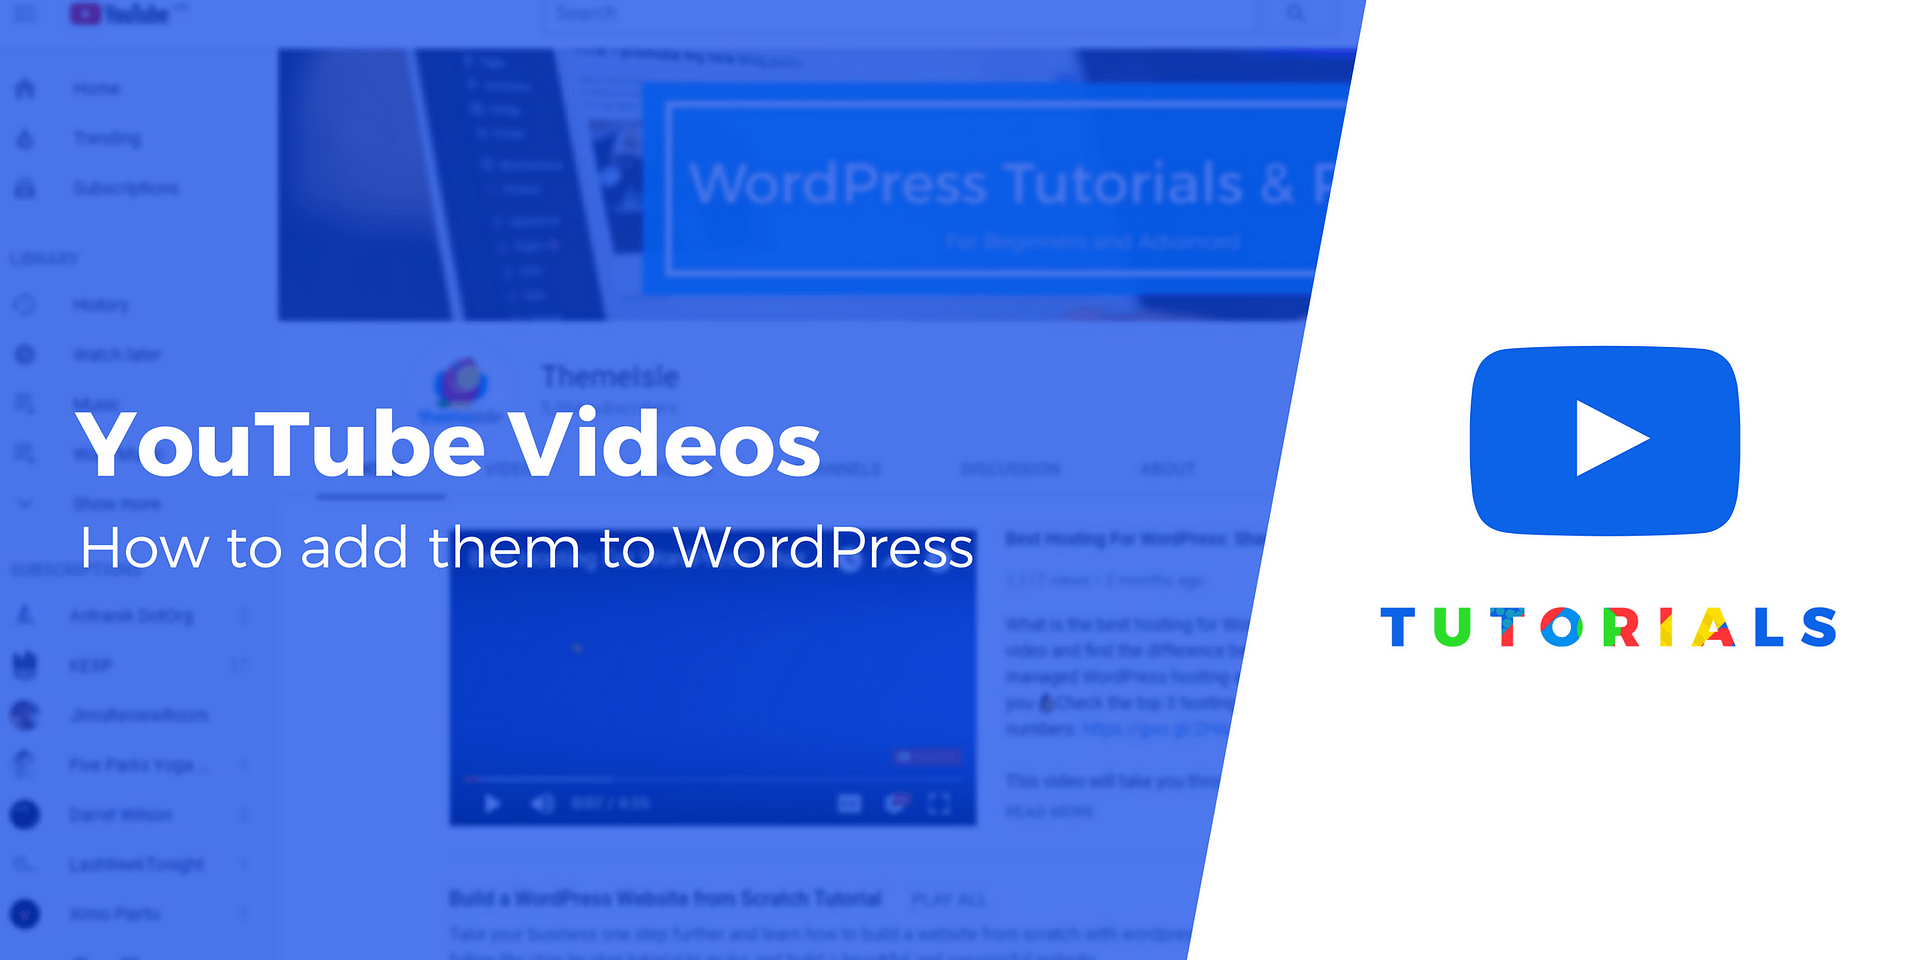 3 Ways to Add YouTube Videos to WordPress: Video, Channels +